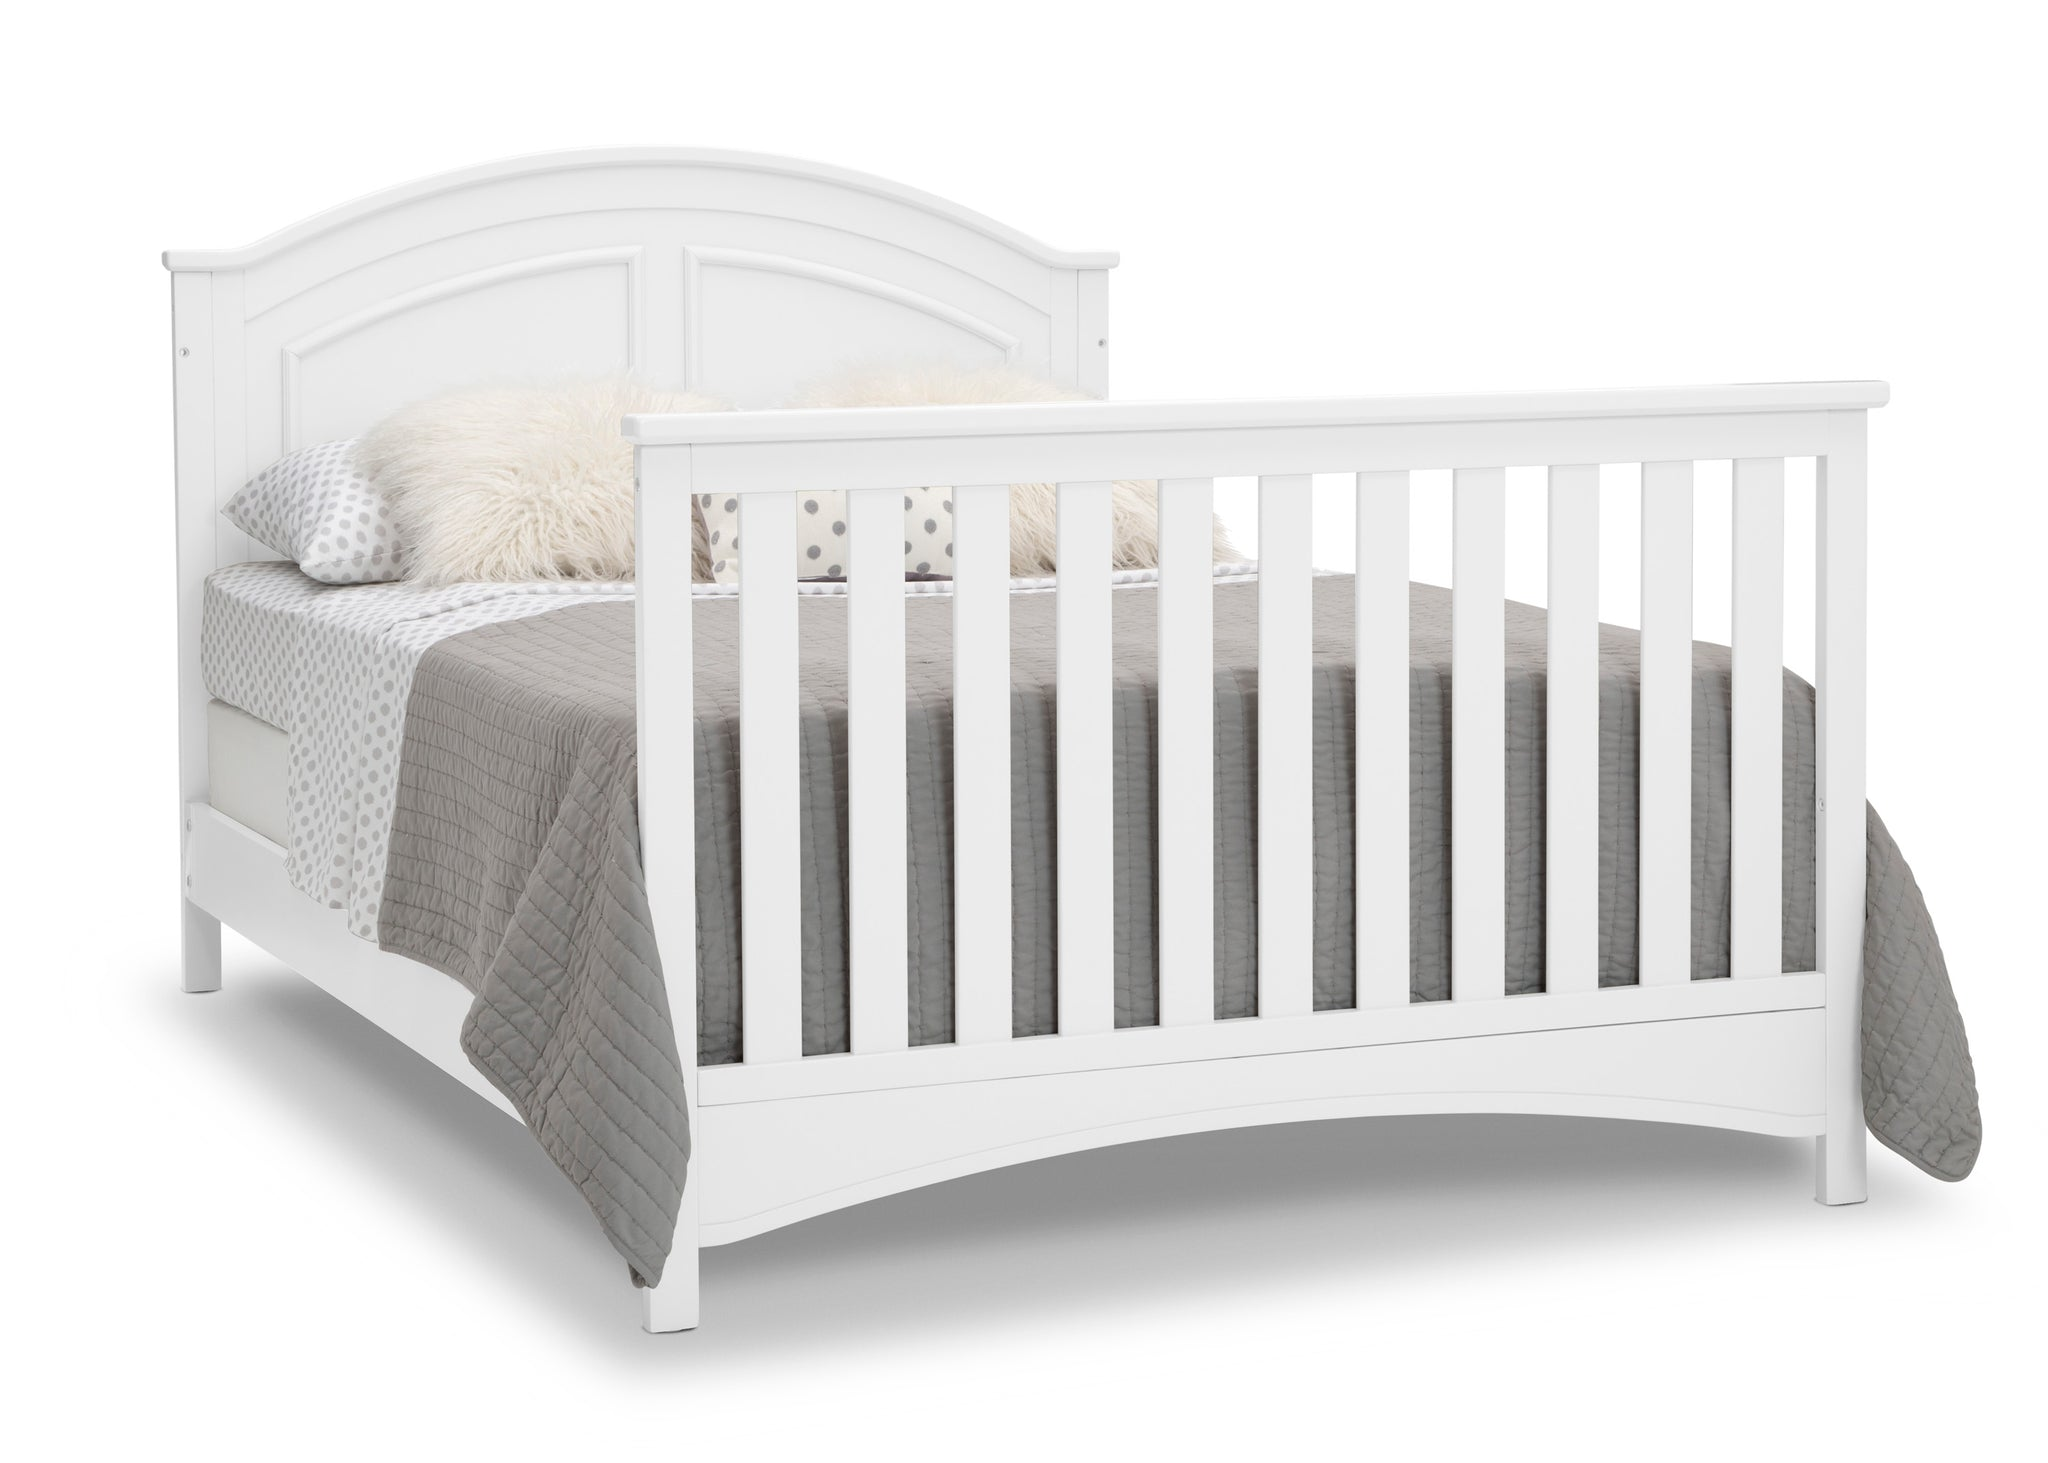 Delta Children Bianca White (130) Perry 6-in-1 Convertible Crib, Right Full Bed with Headboard and Footboard Silo View